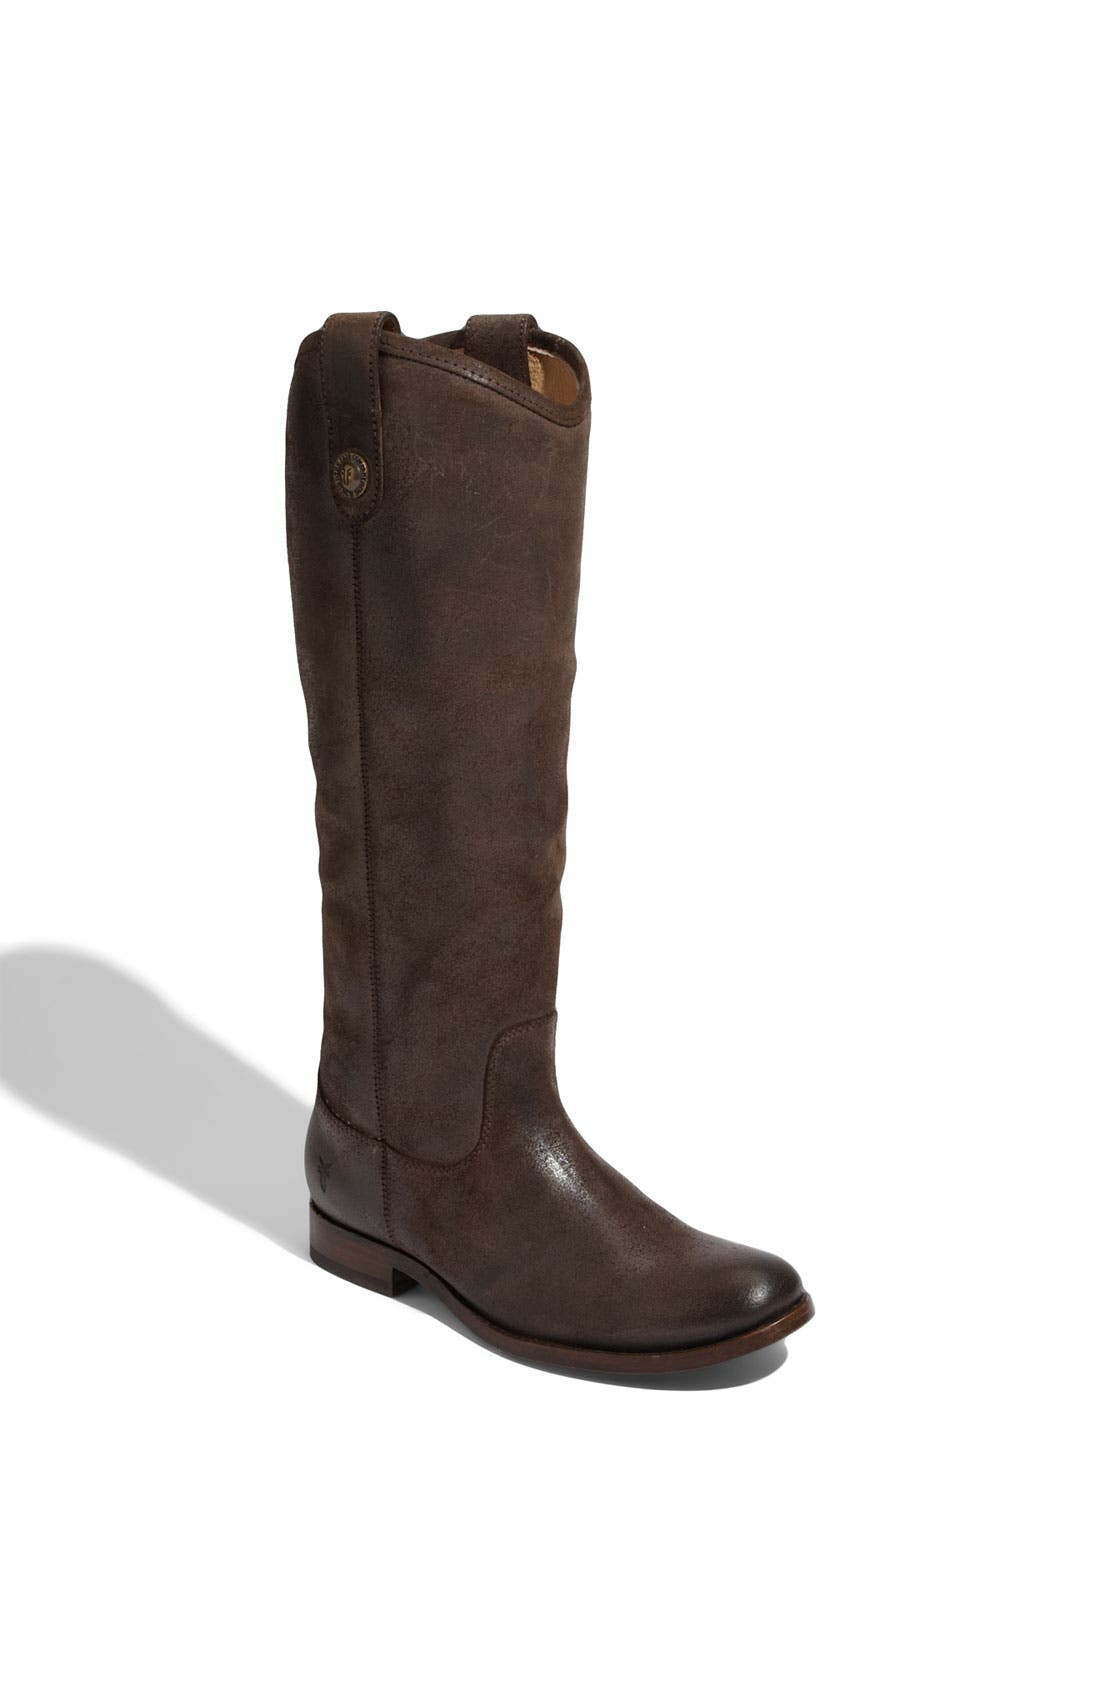 'Melissa Button' Leather Riding Boot,                             Main thumbnail 21, color,